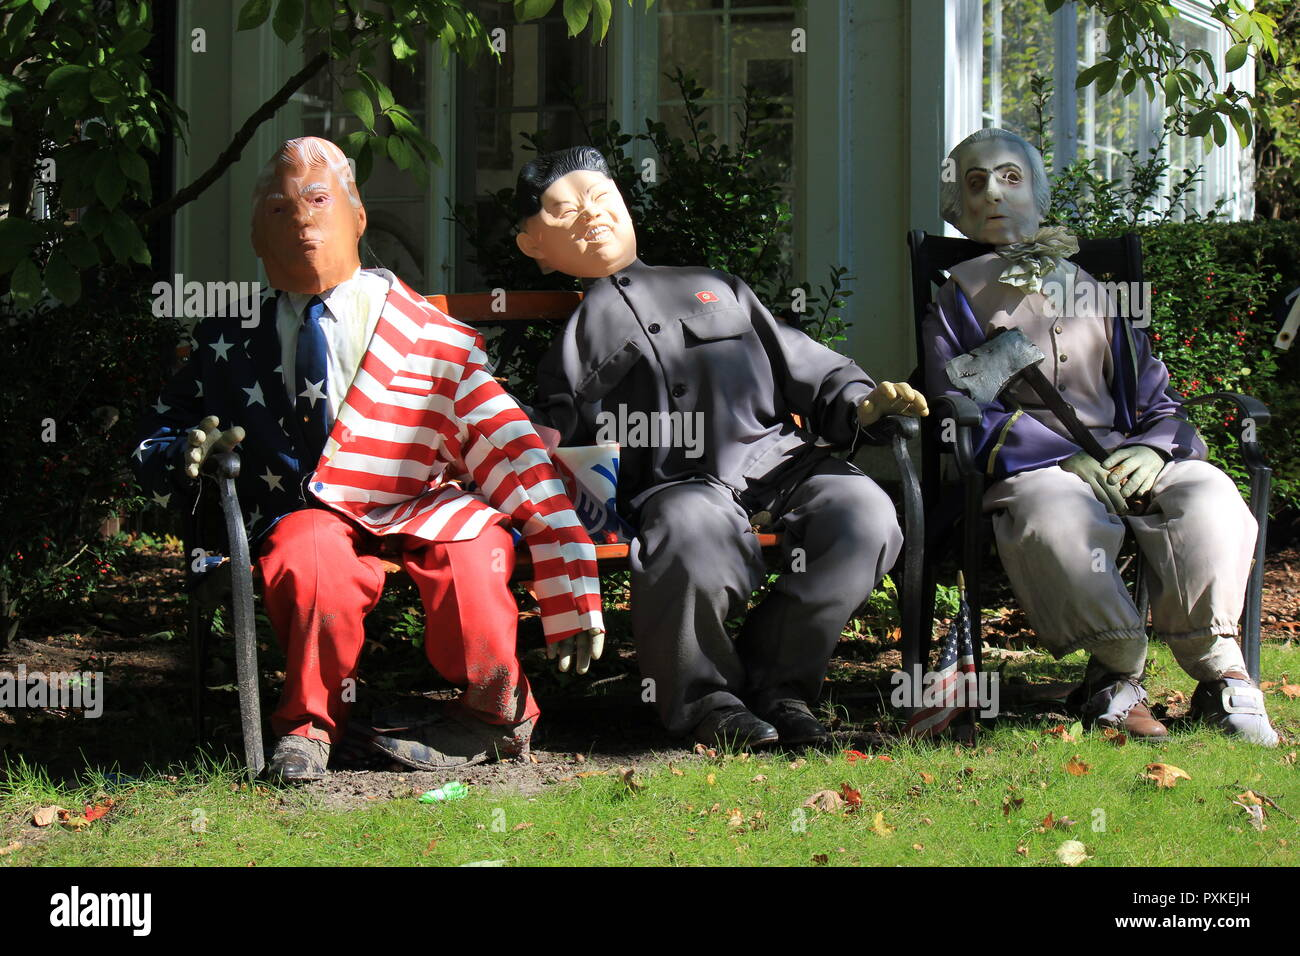 Unusual Halloween decorations showing a strong political interest while showcasing legendary politicians Donald Trump, Kim Jong Un, and George Washington. - Stock Image